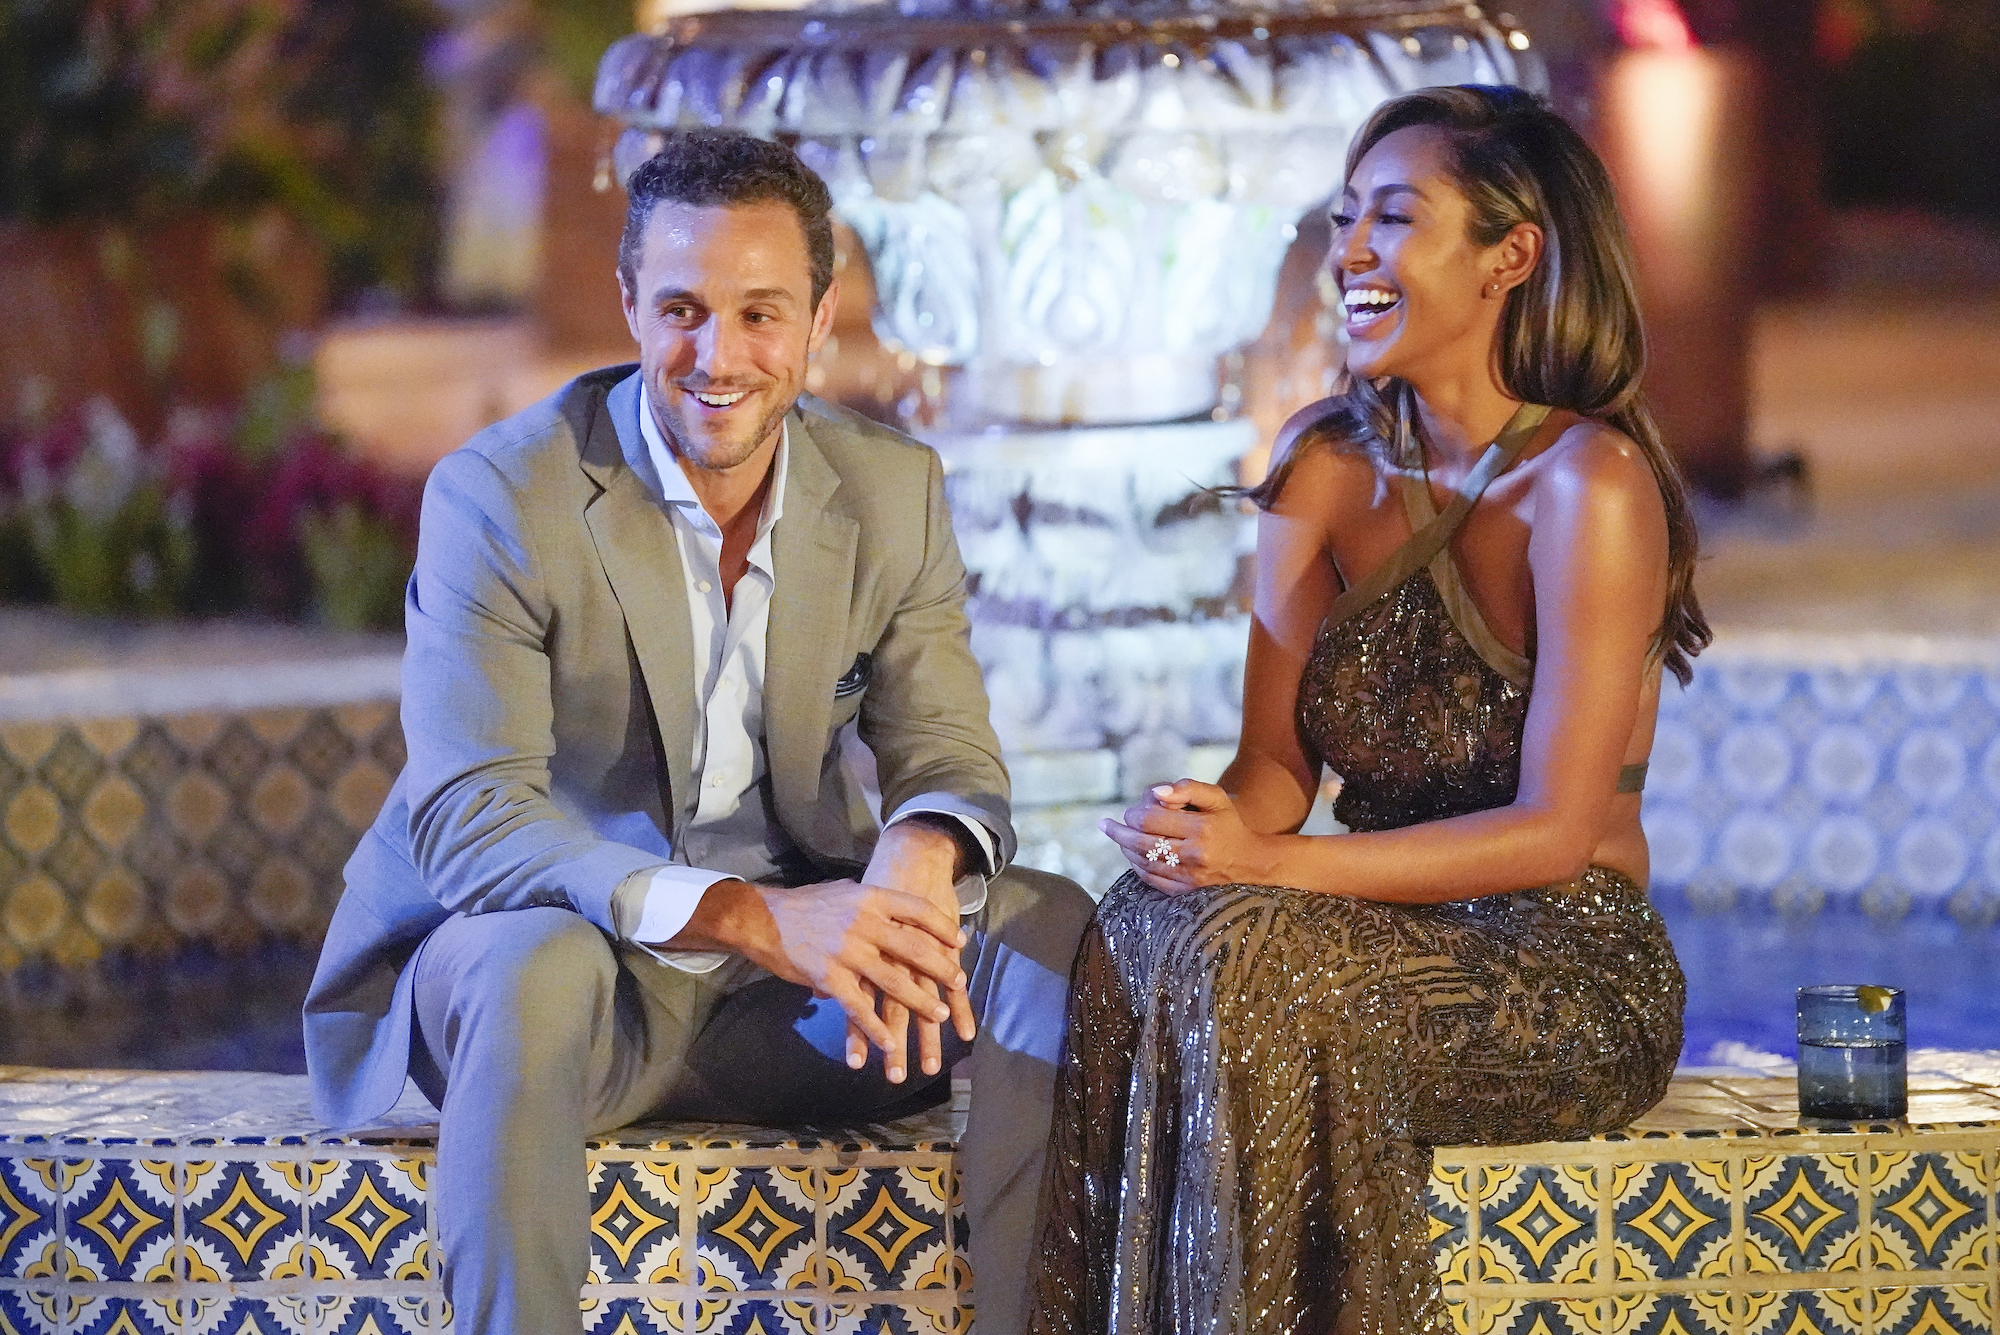 Tayshia Adams reveals why she was hesitant to become the new Bachelorette